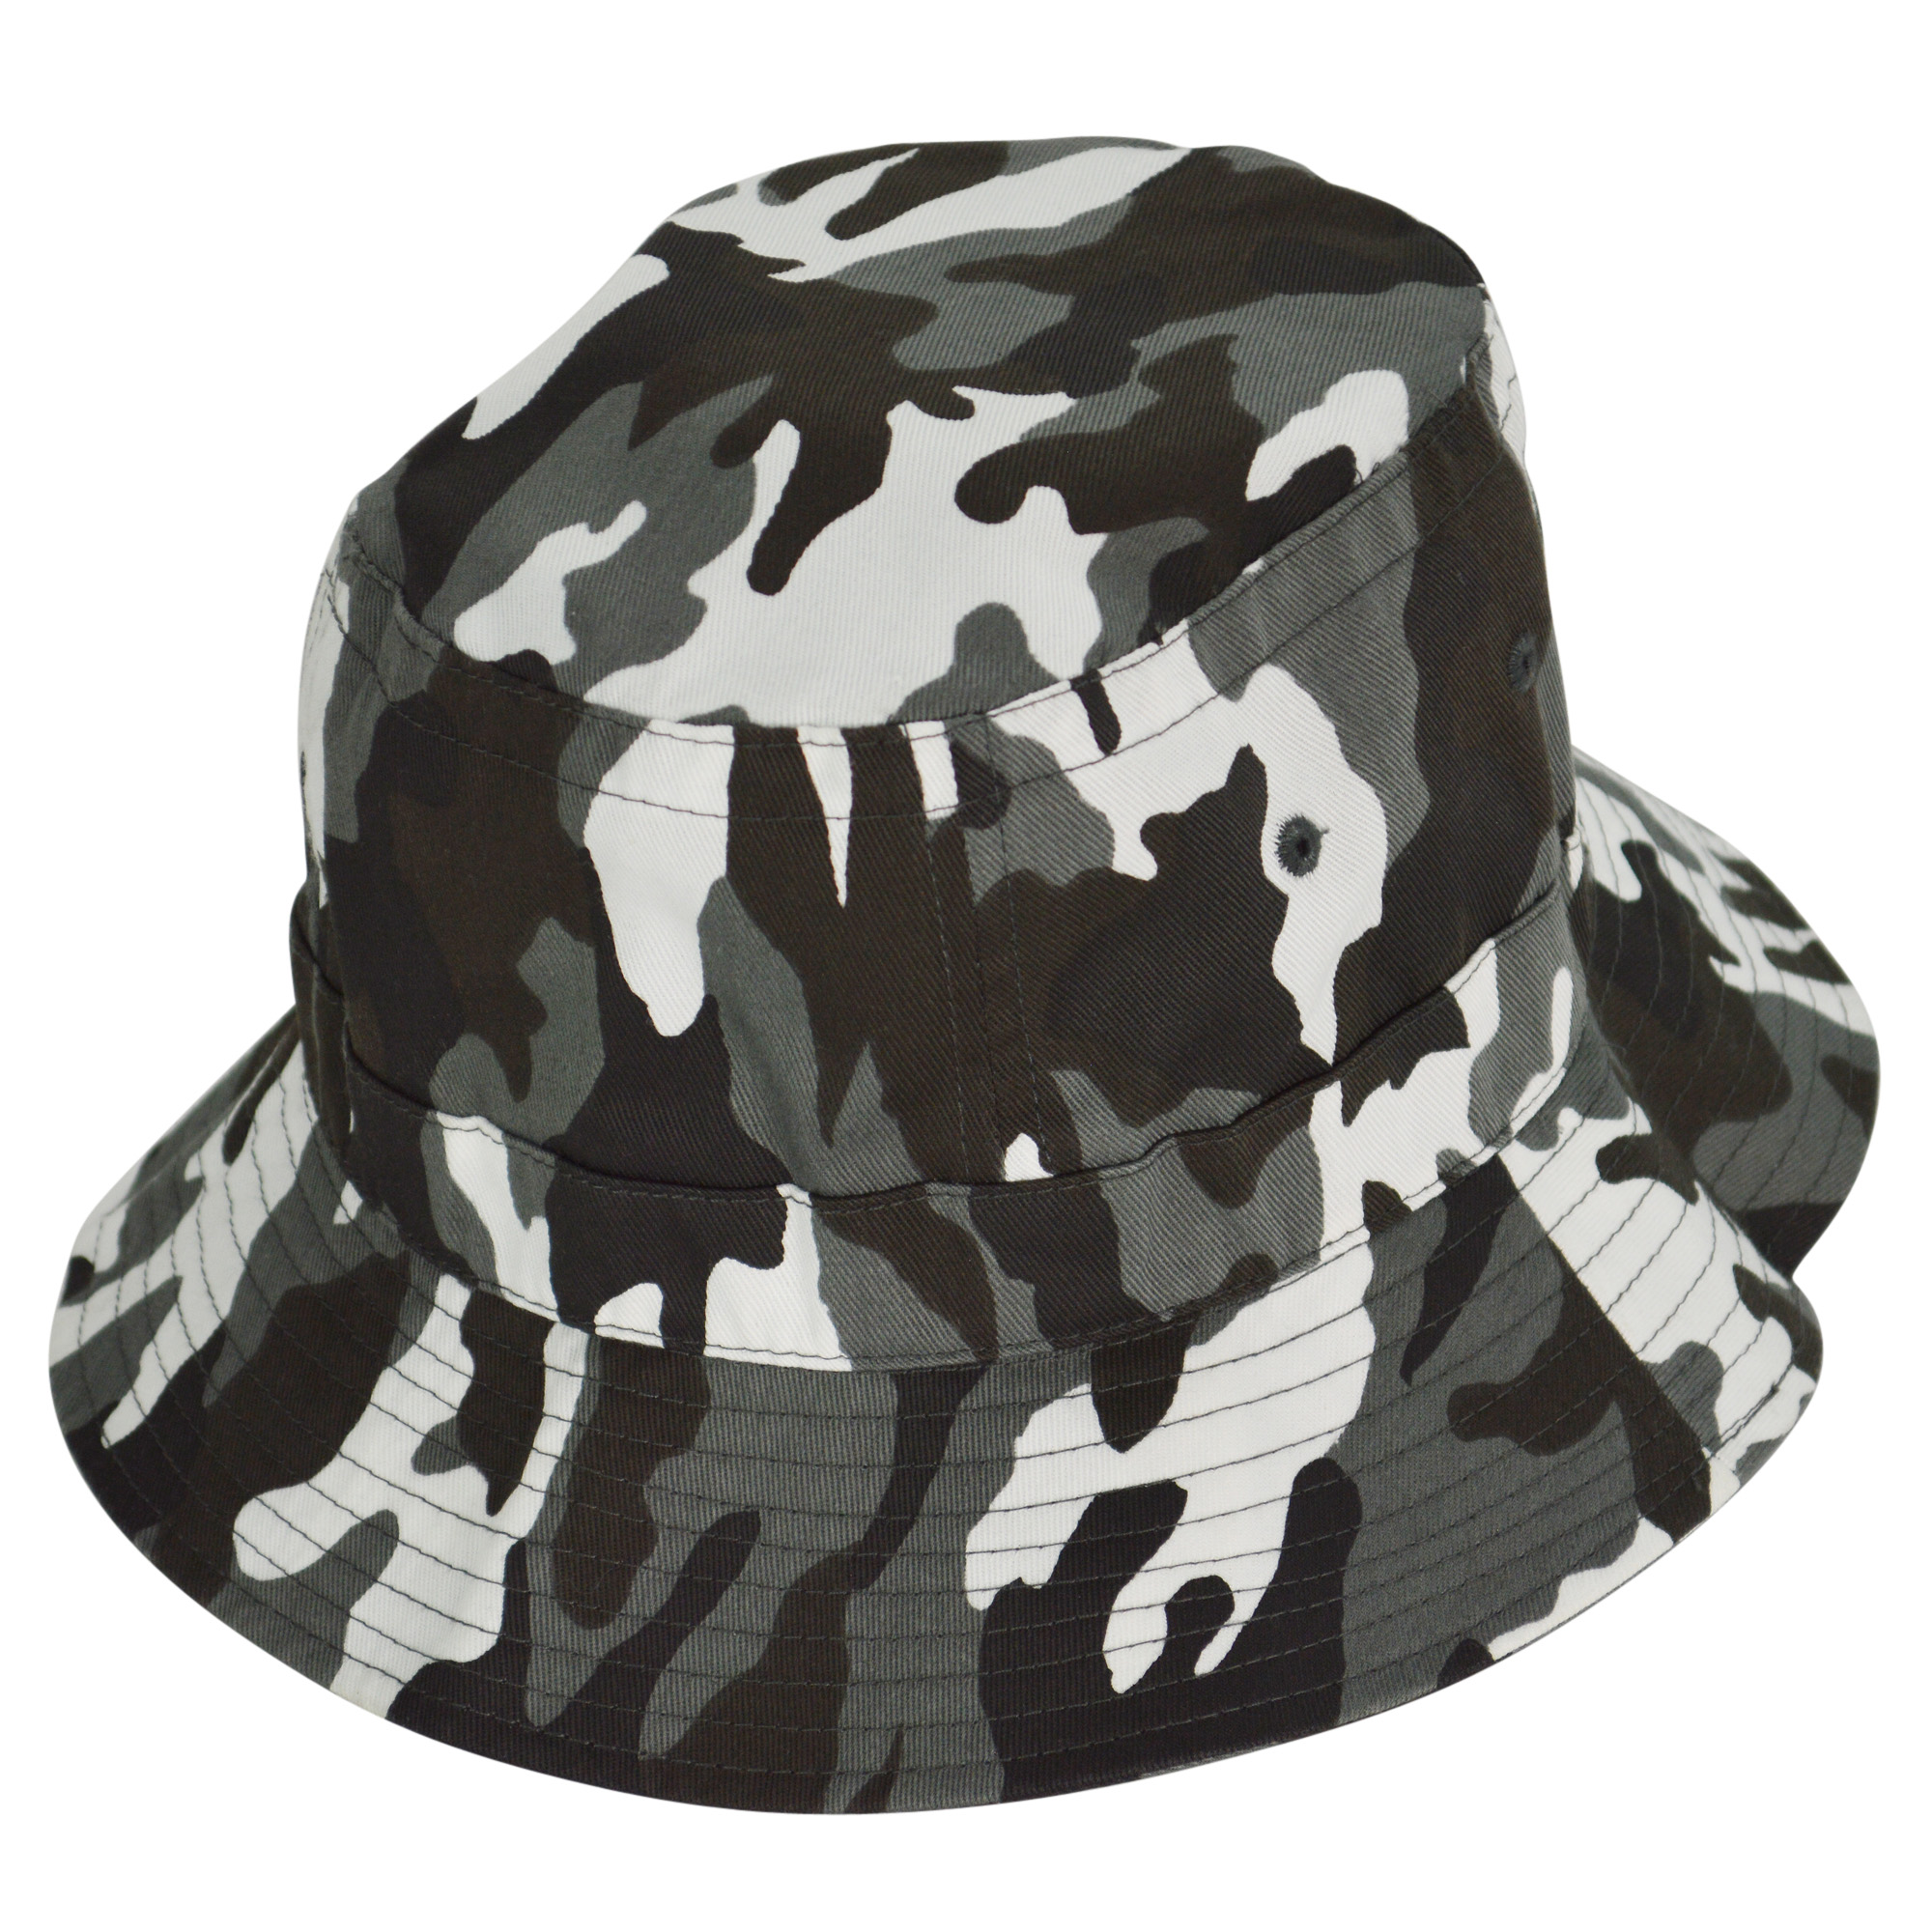 DALIX Gray Camouflage Washed Cotton Bucket Hat -Large 7 1/8 Size